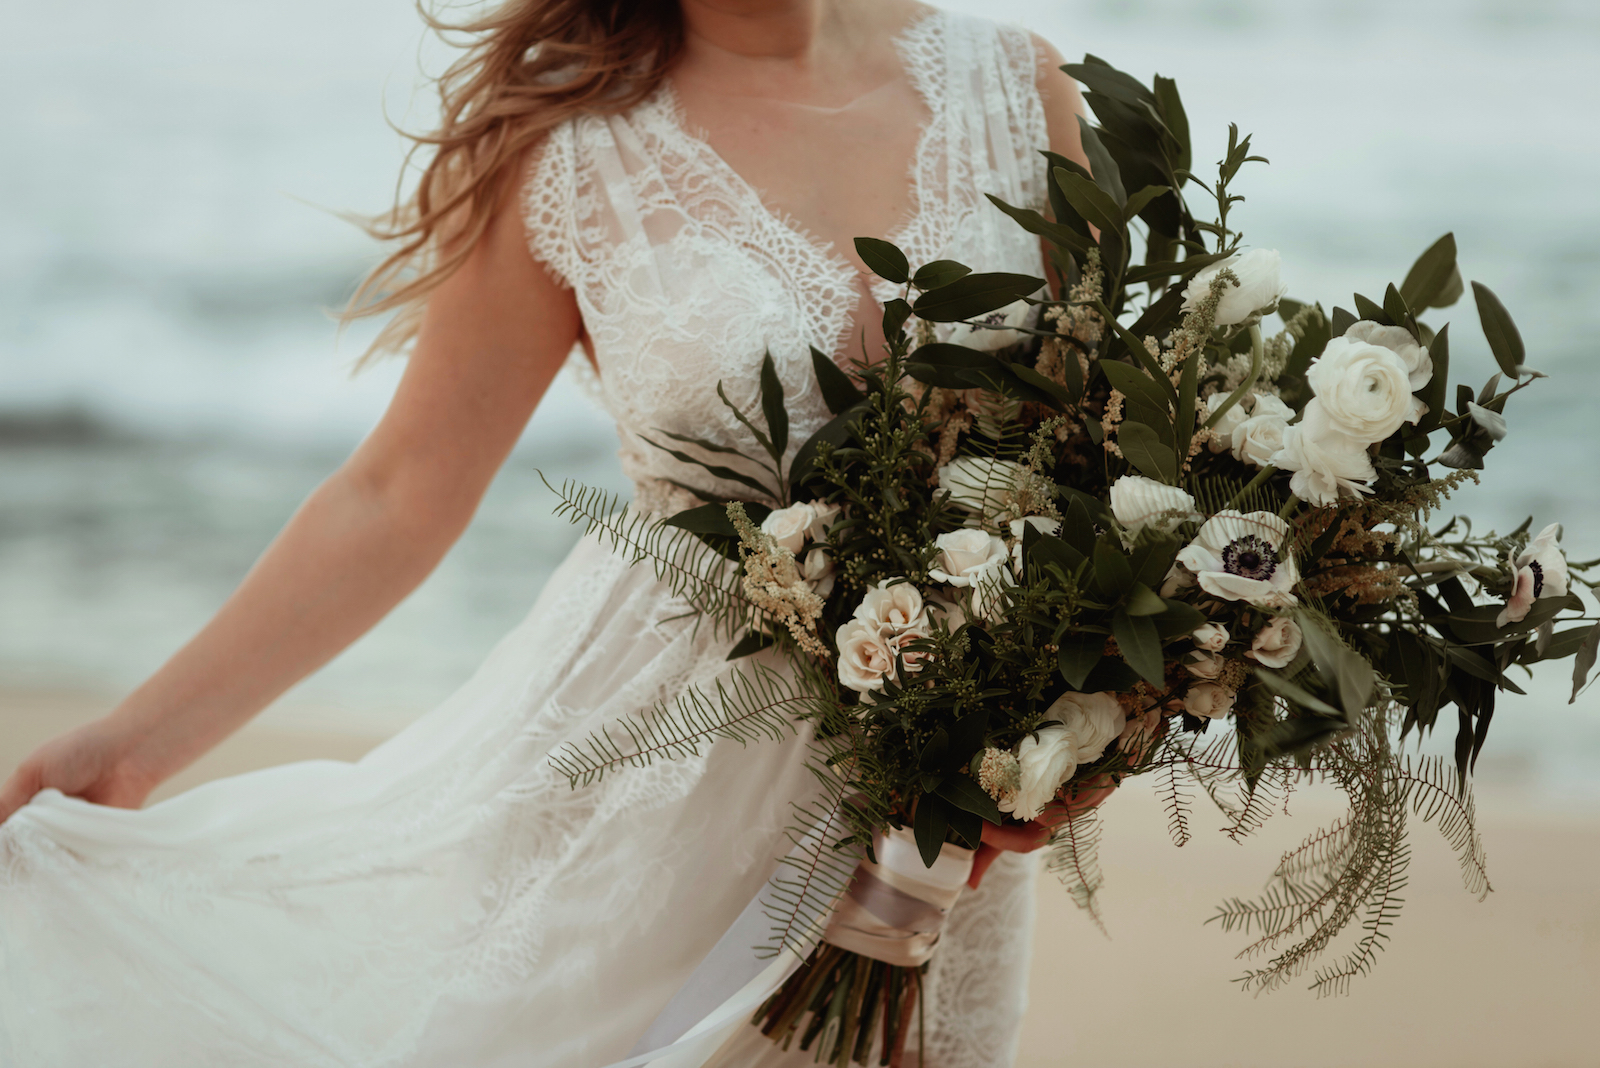 Lace and a Freshly Picked Bouquet are Boho Essentials